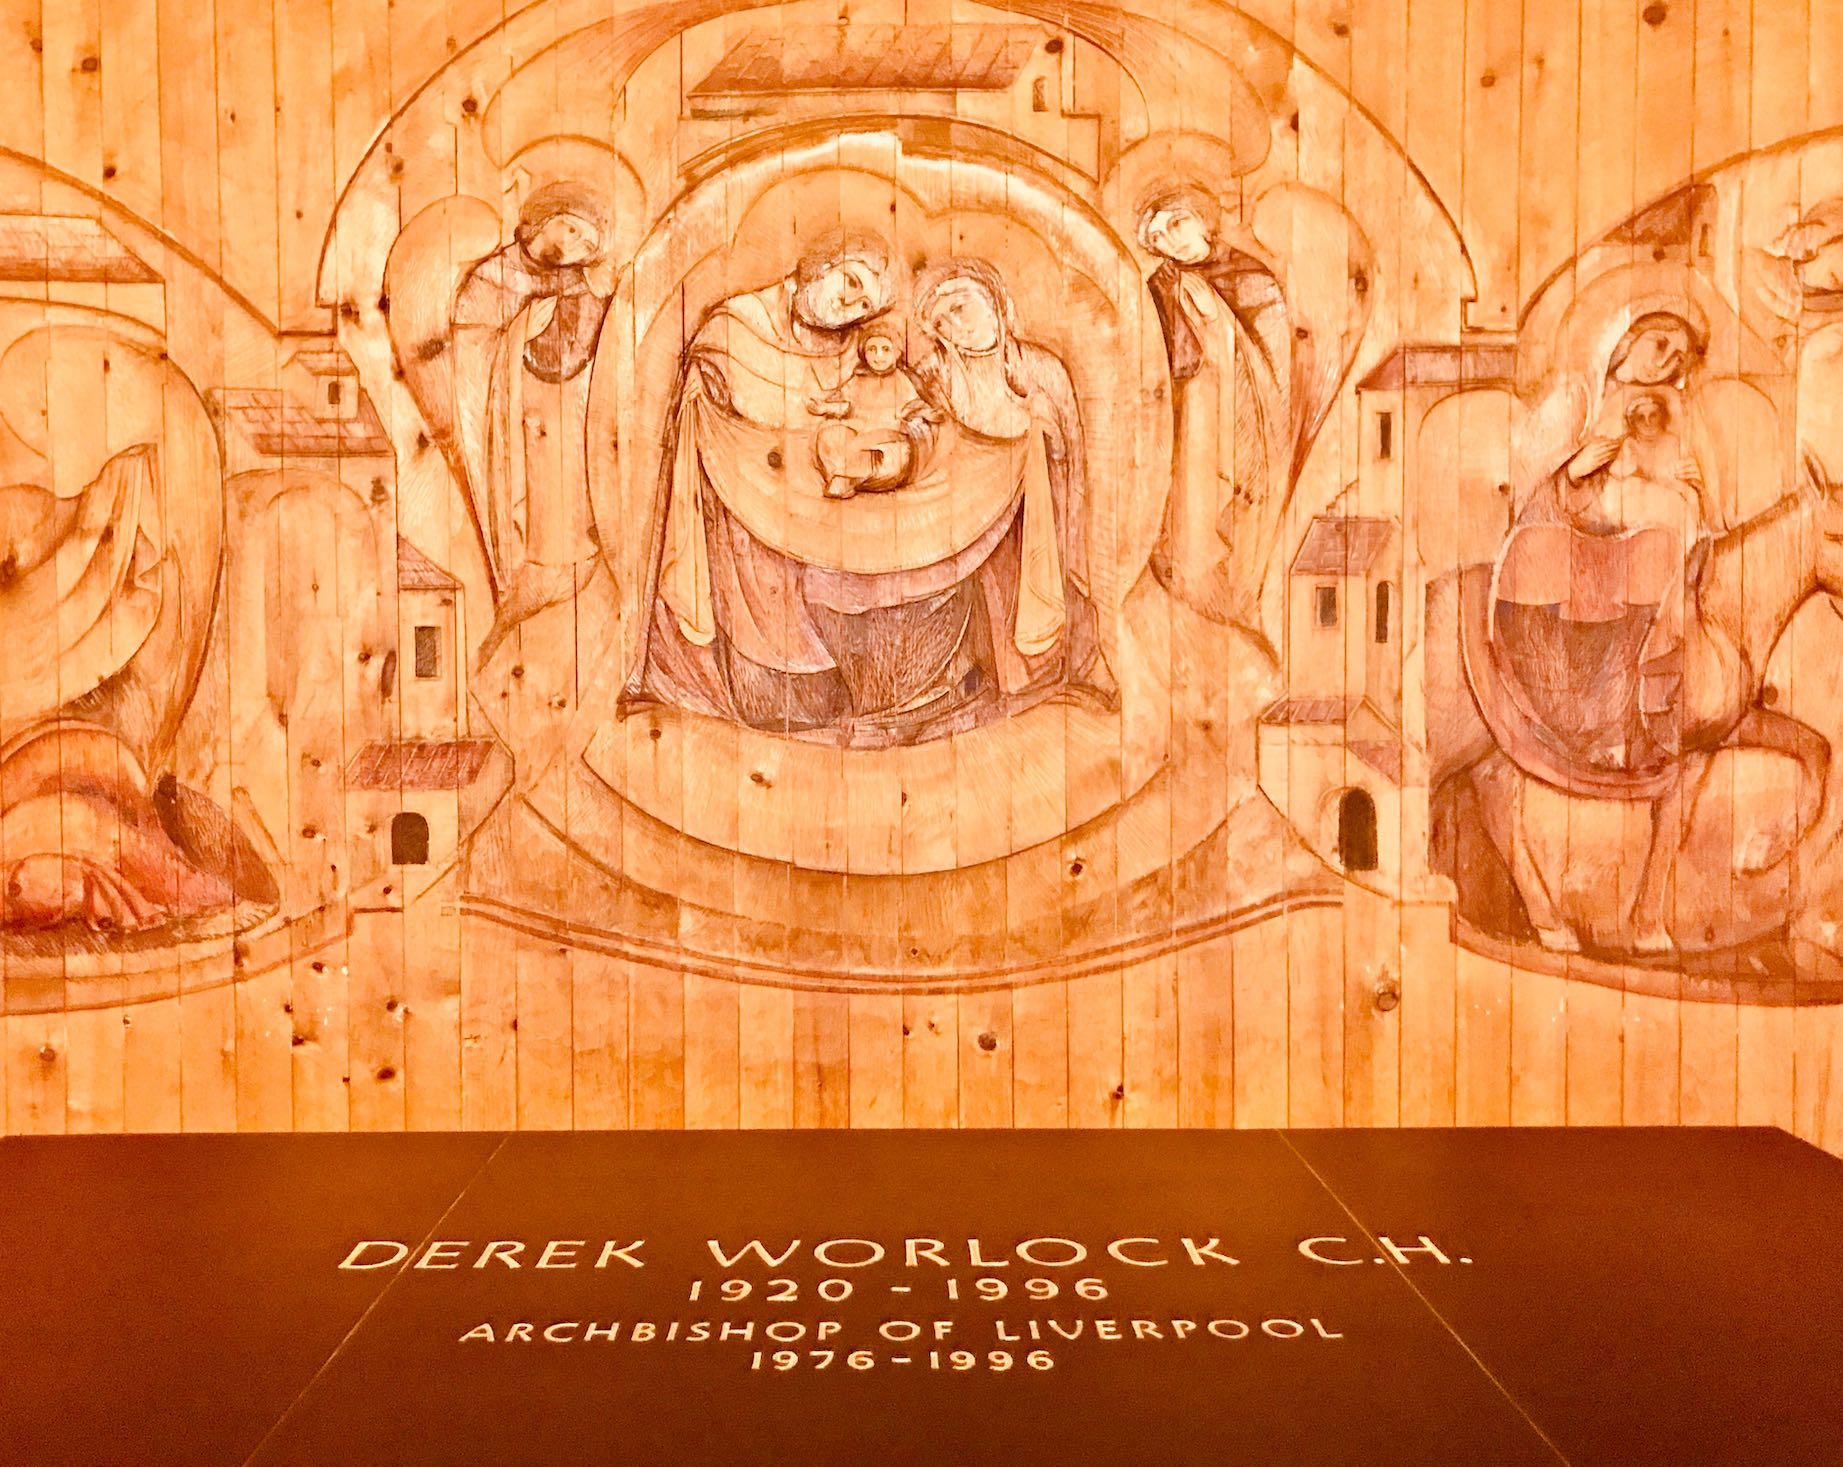 Wood carvings in St. Joseph's Chapel Liverpool Metropolitan Cathedral